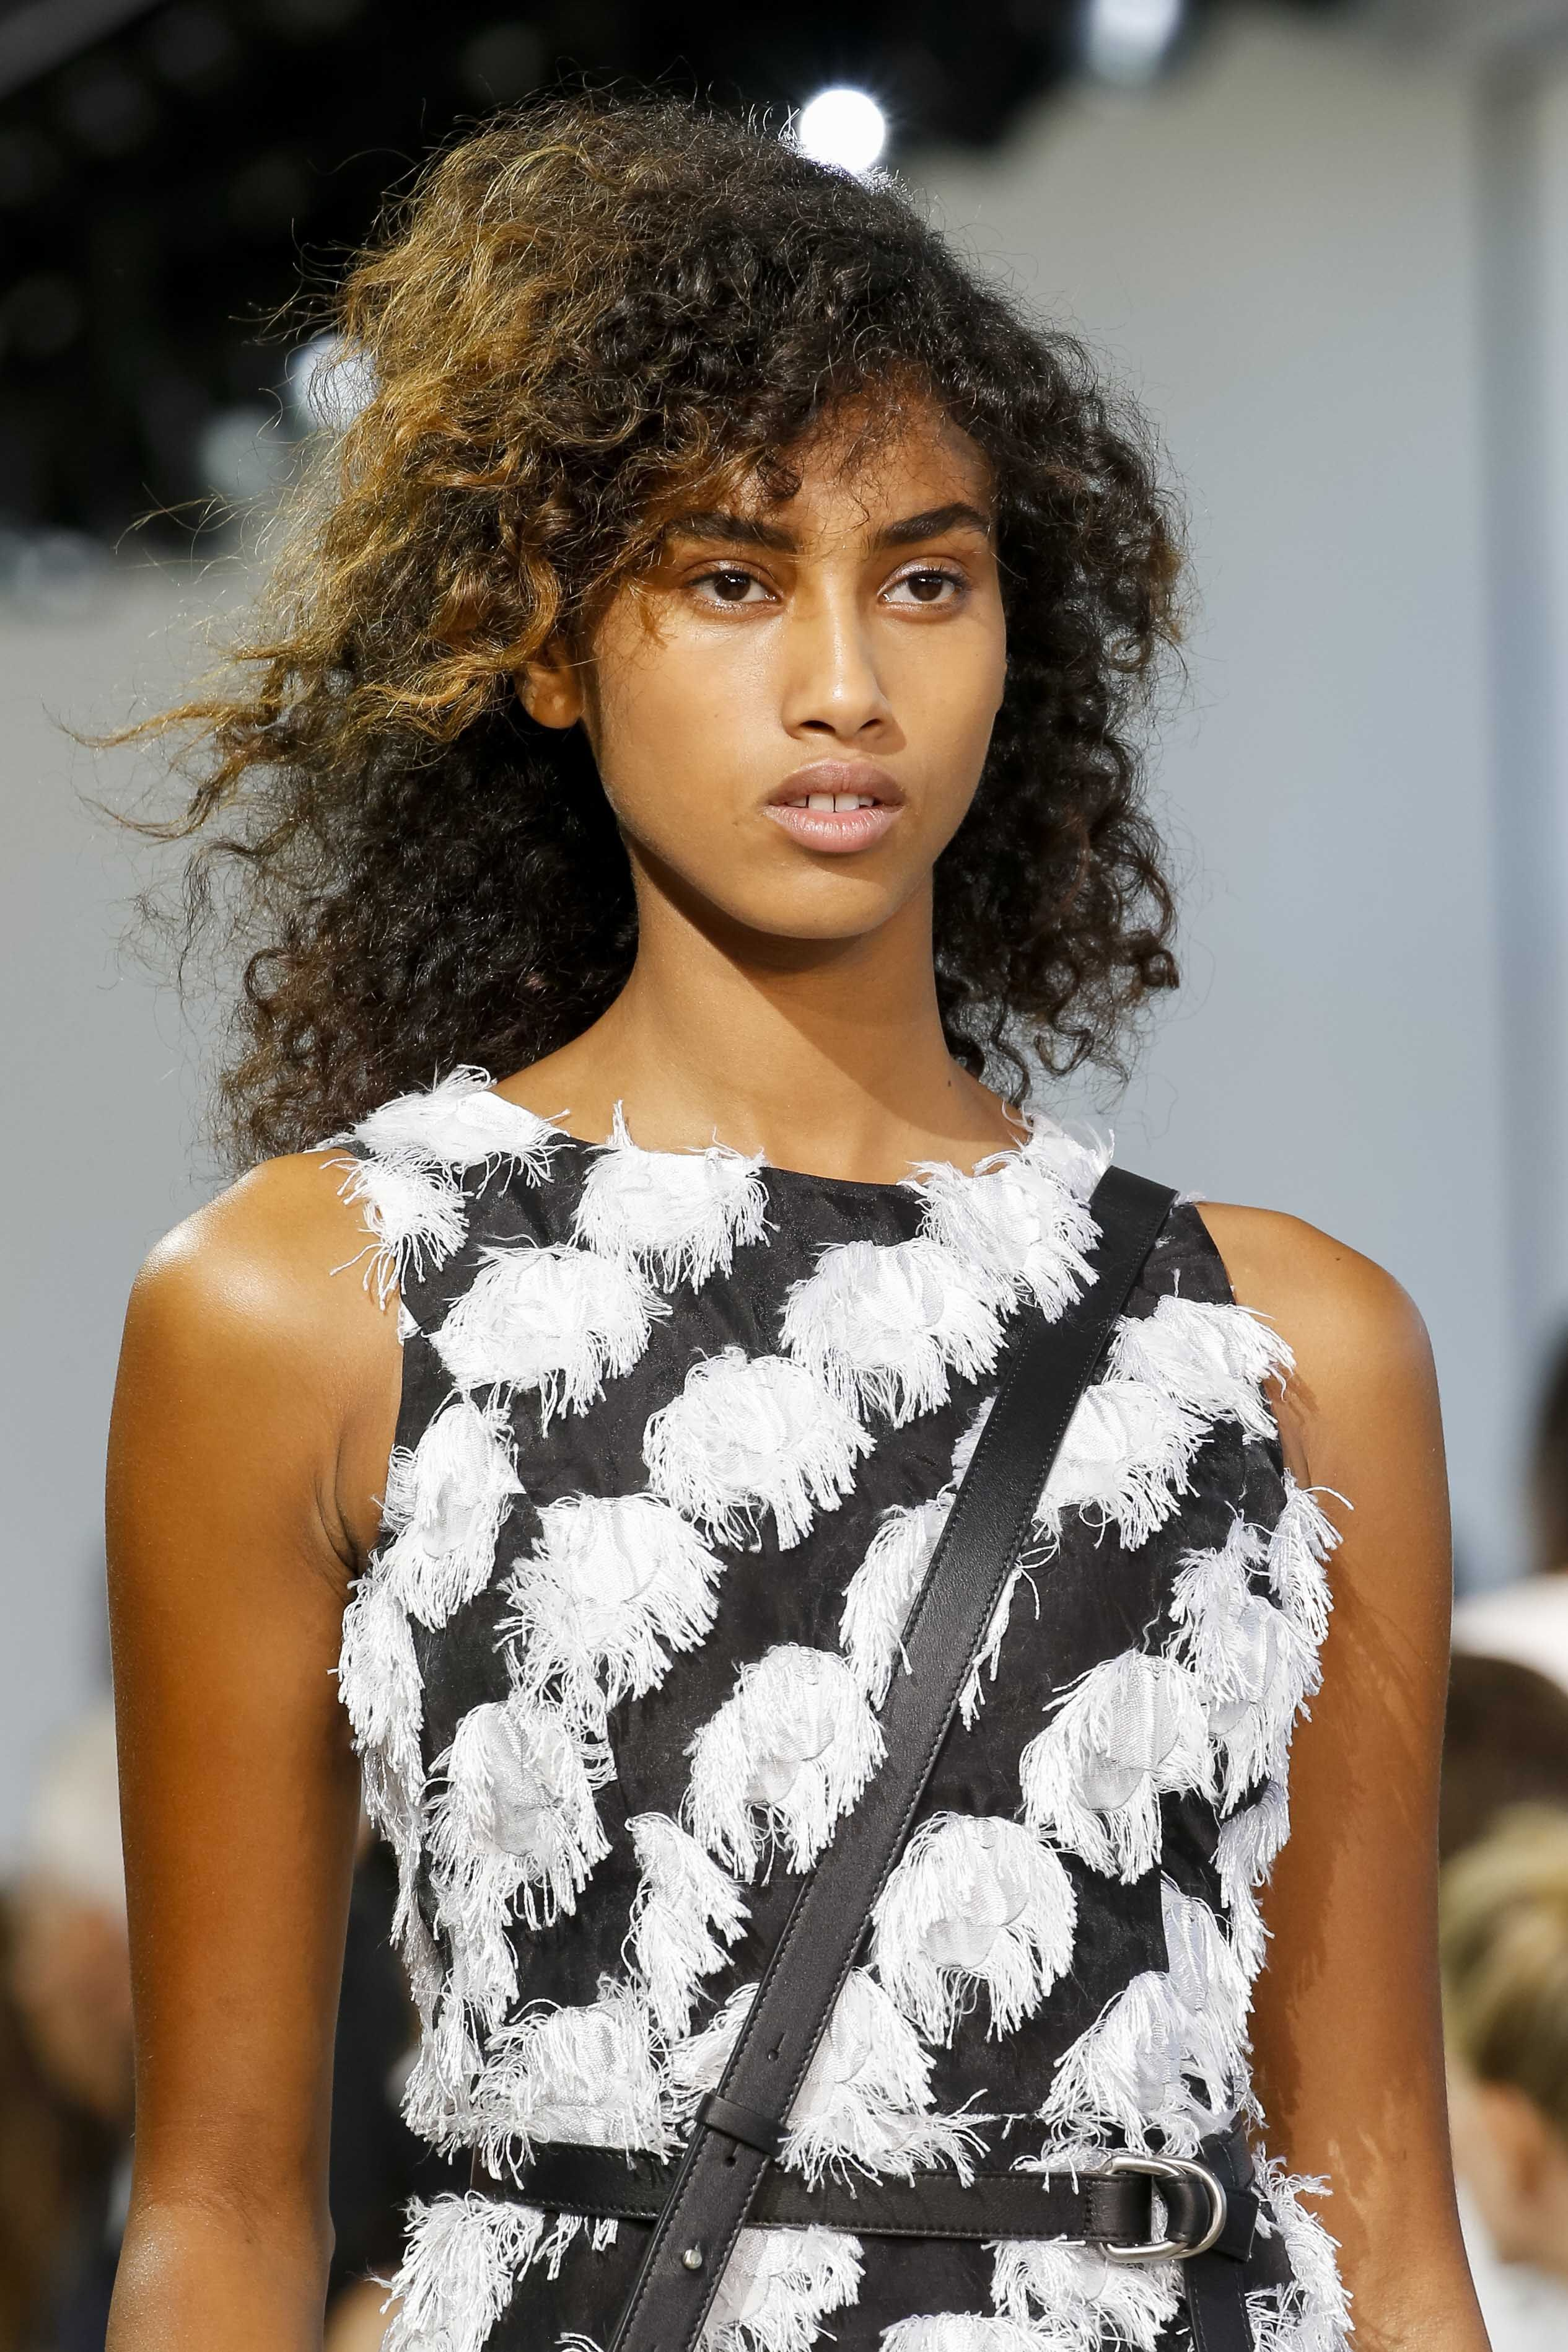 Easy natural hairstyles we still adore for attractive guise people